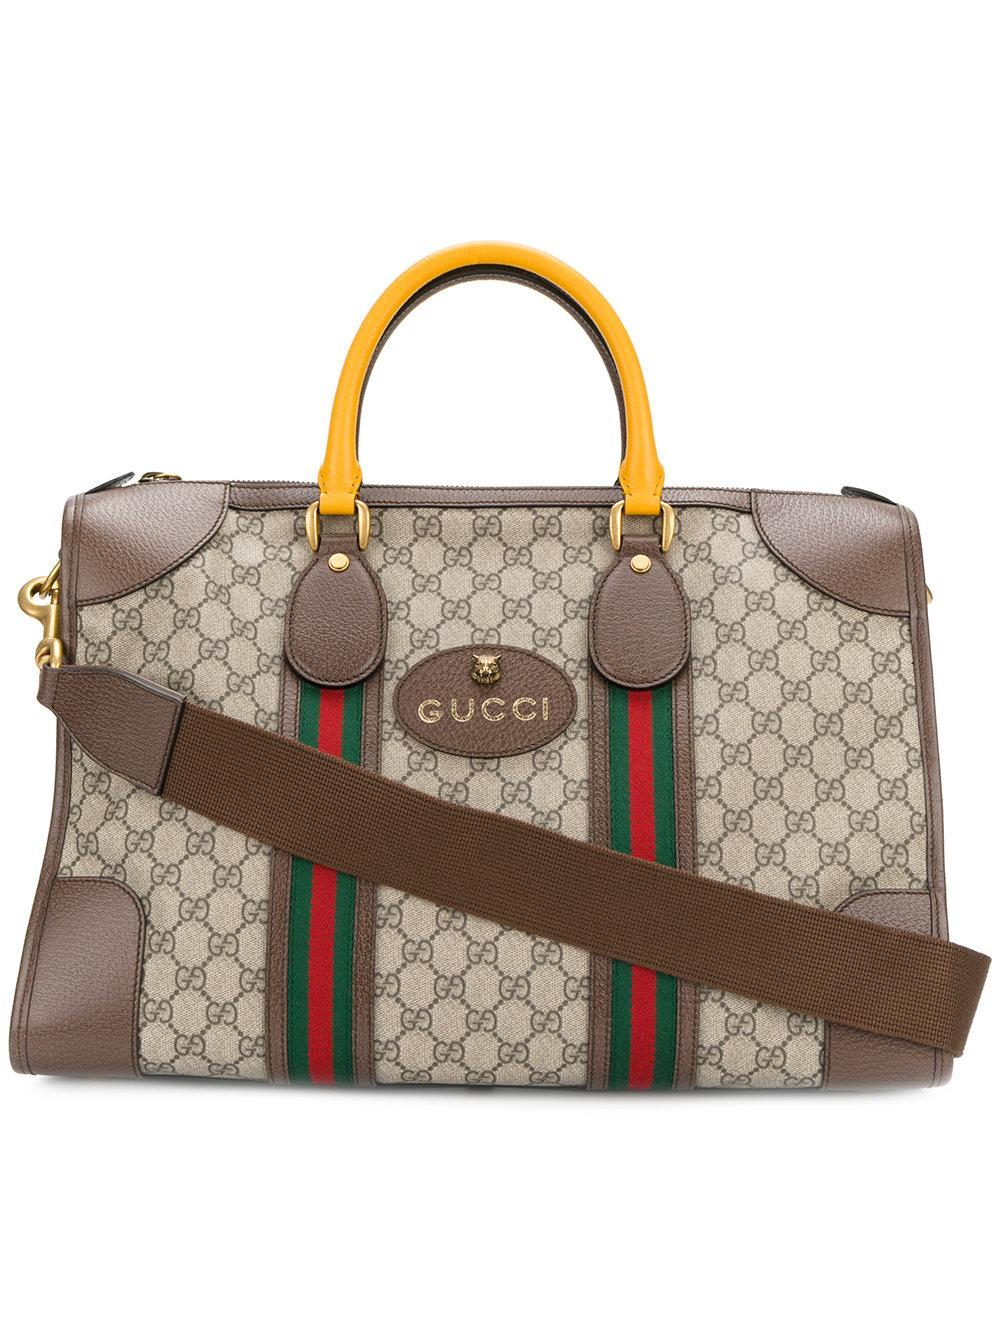 60e60d4b0119 Gucci Luggage Bag Uk | Stanford Center for Opportunity Policy in ...